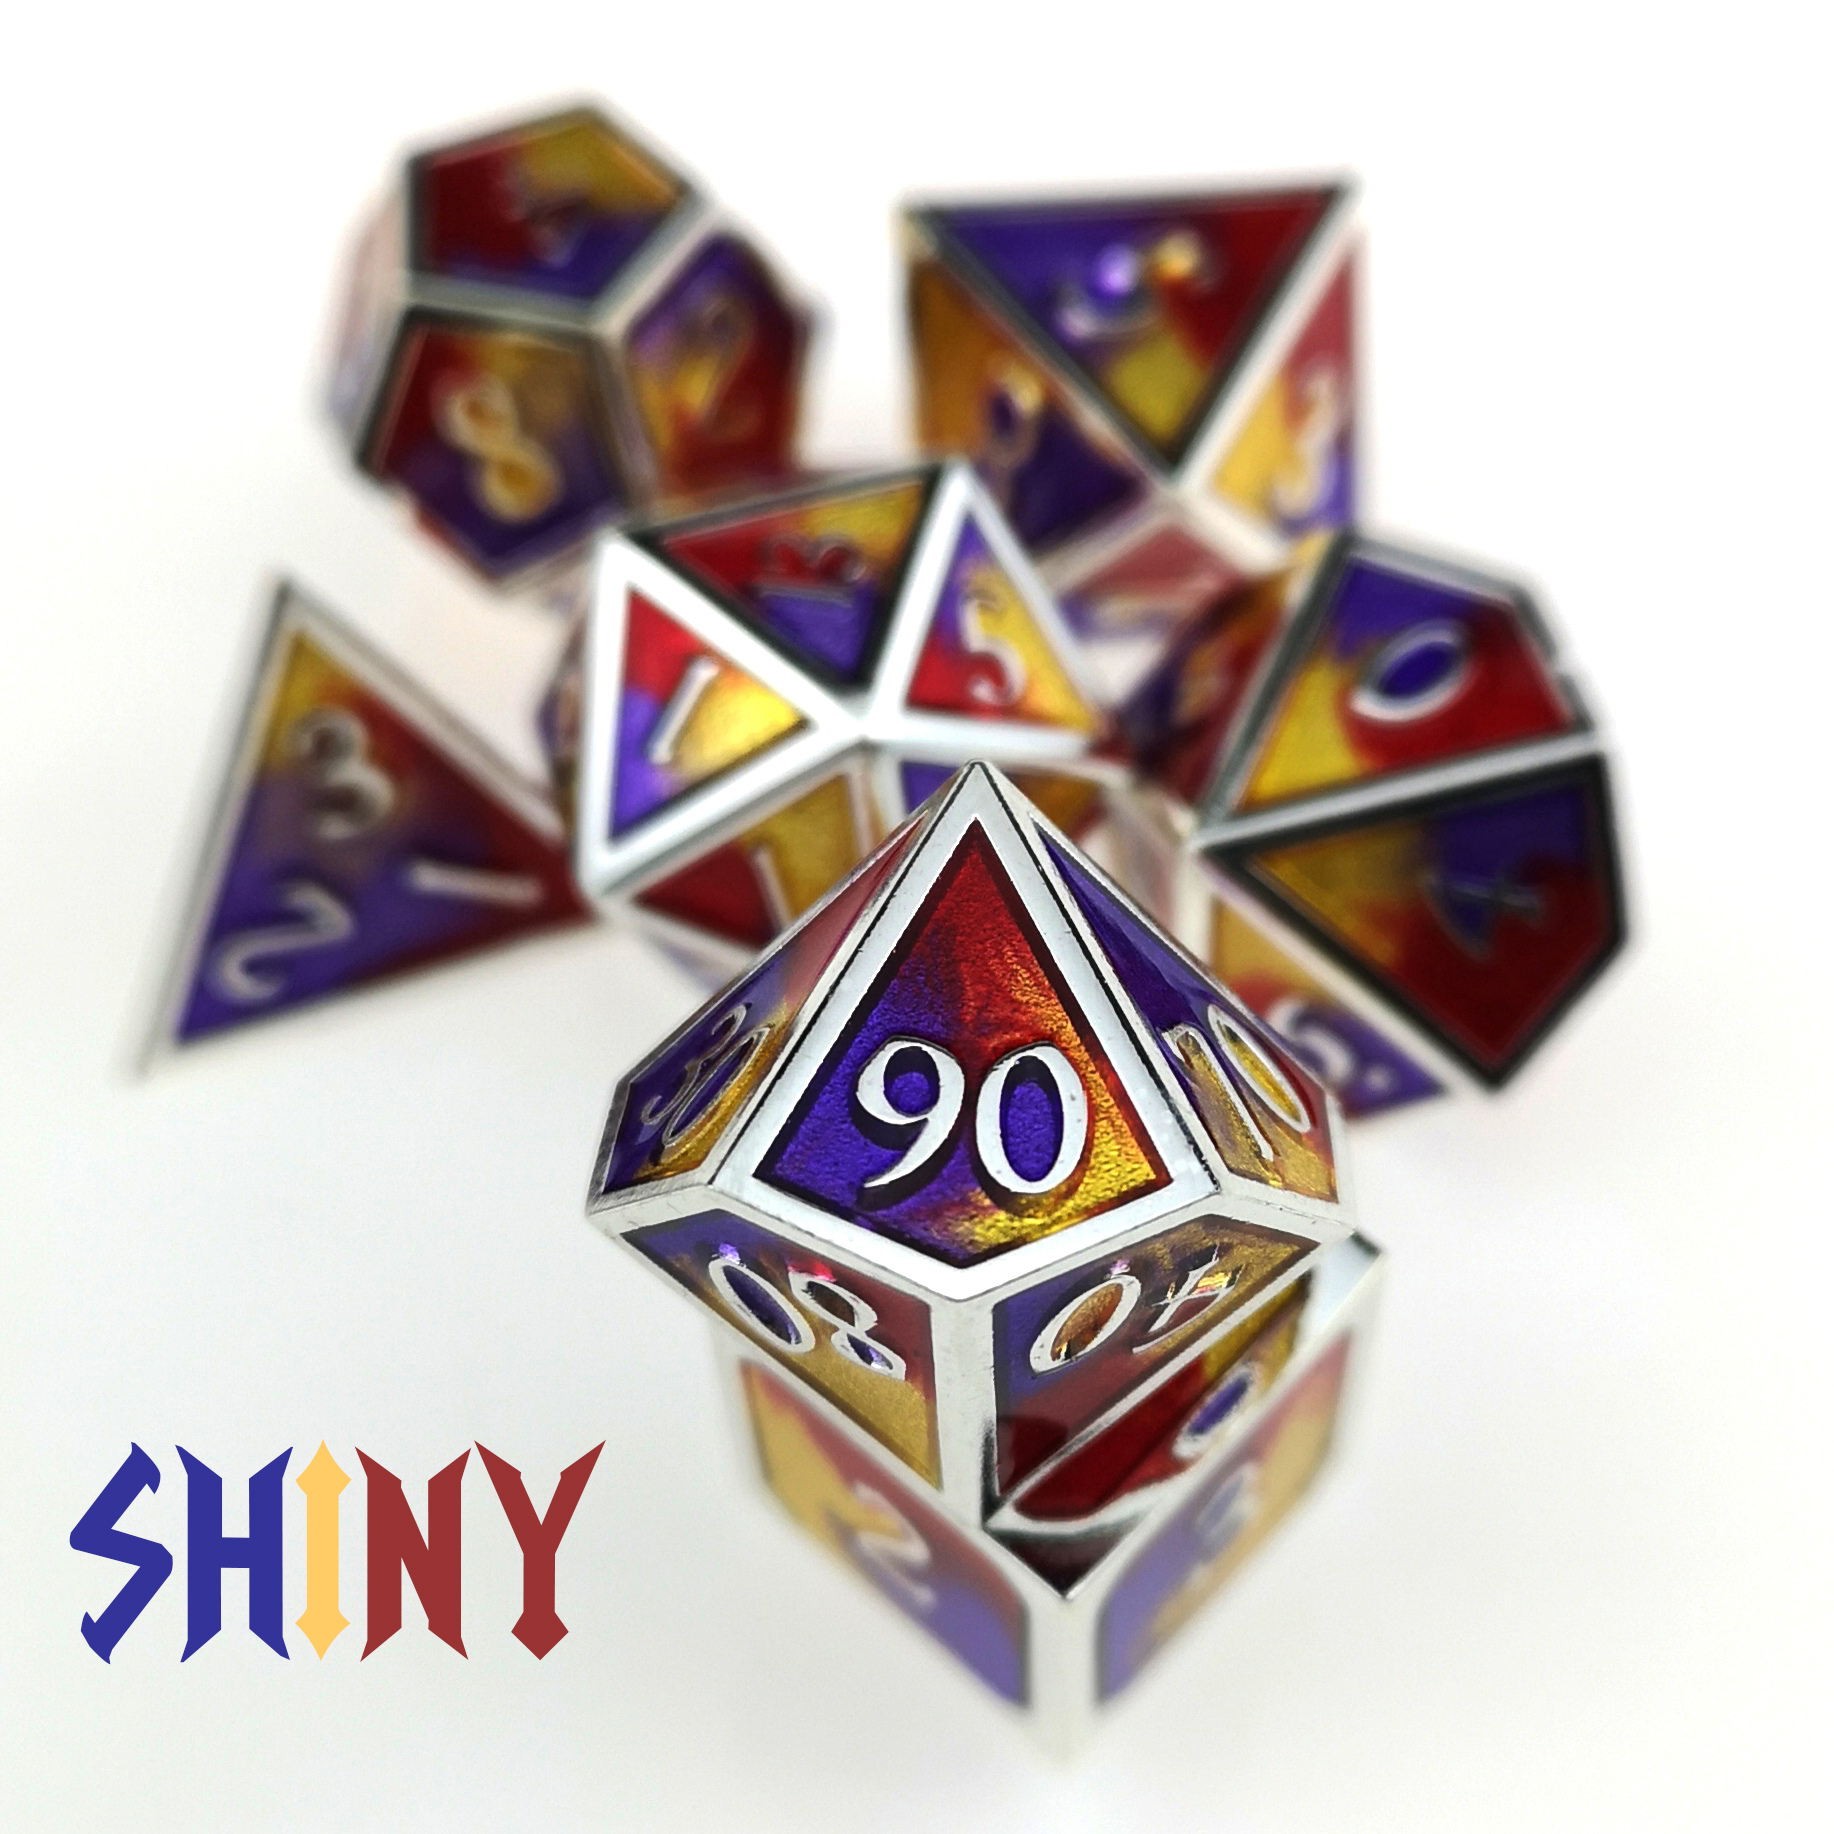 Rollooo Large Shapes Prismatic Metal Dice 7-Die Set D4 D6 D8 D10 D% D12 D20 For Role Playing D&D MTG Games